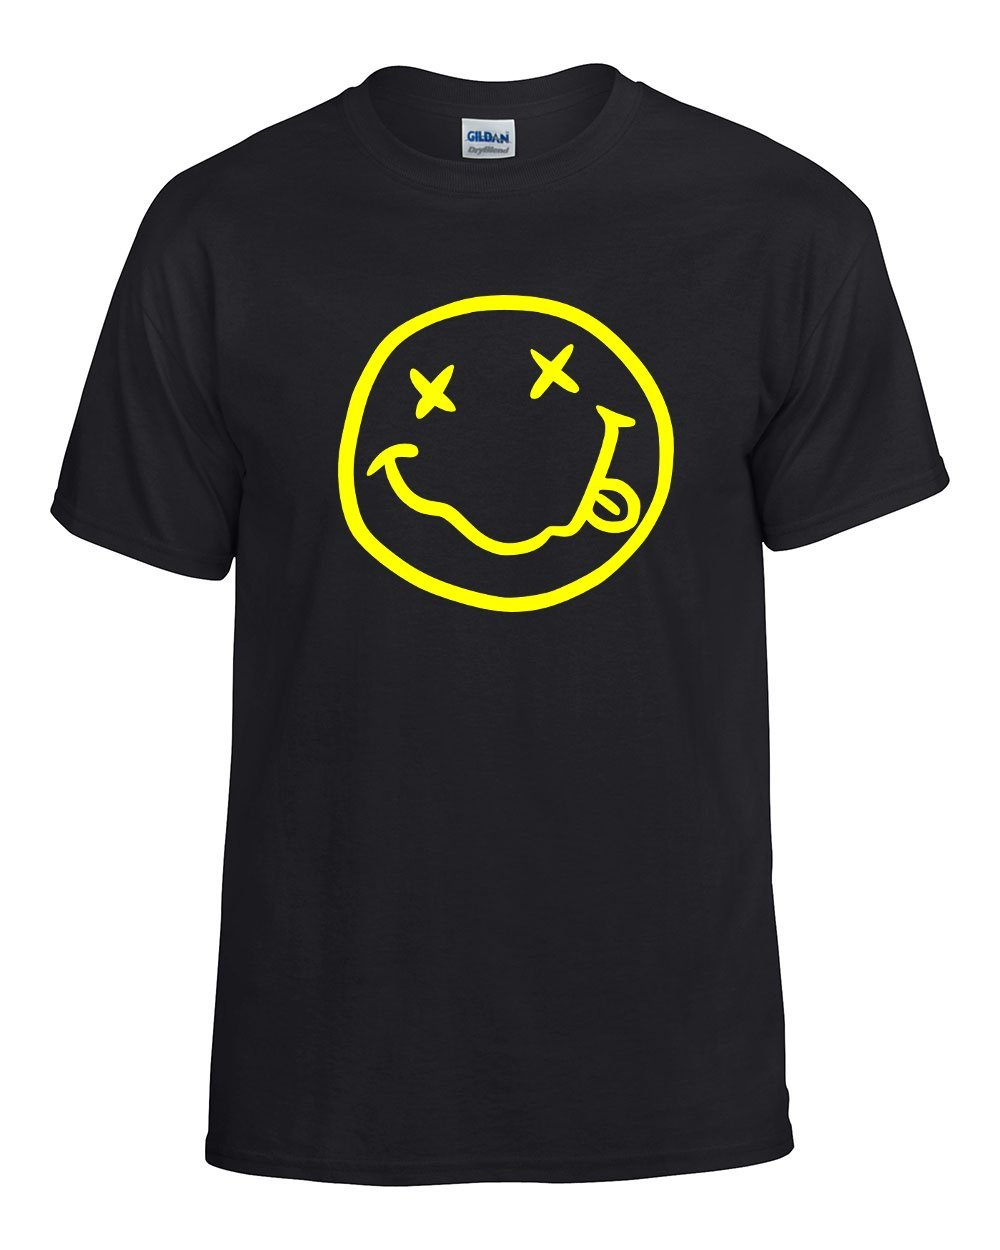 Nirvana Smiley T Shirt | Vintage Style 90's Design | Womens Black T-shirt 0